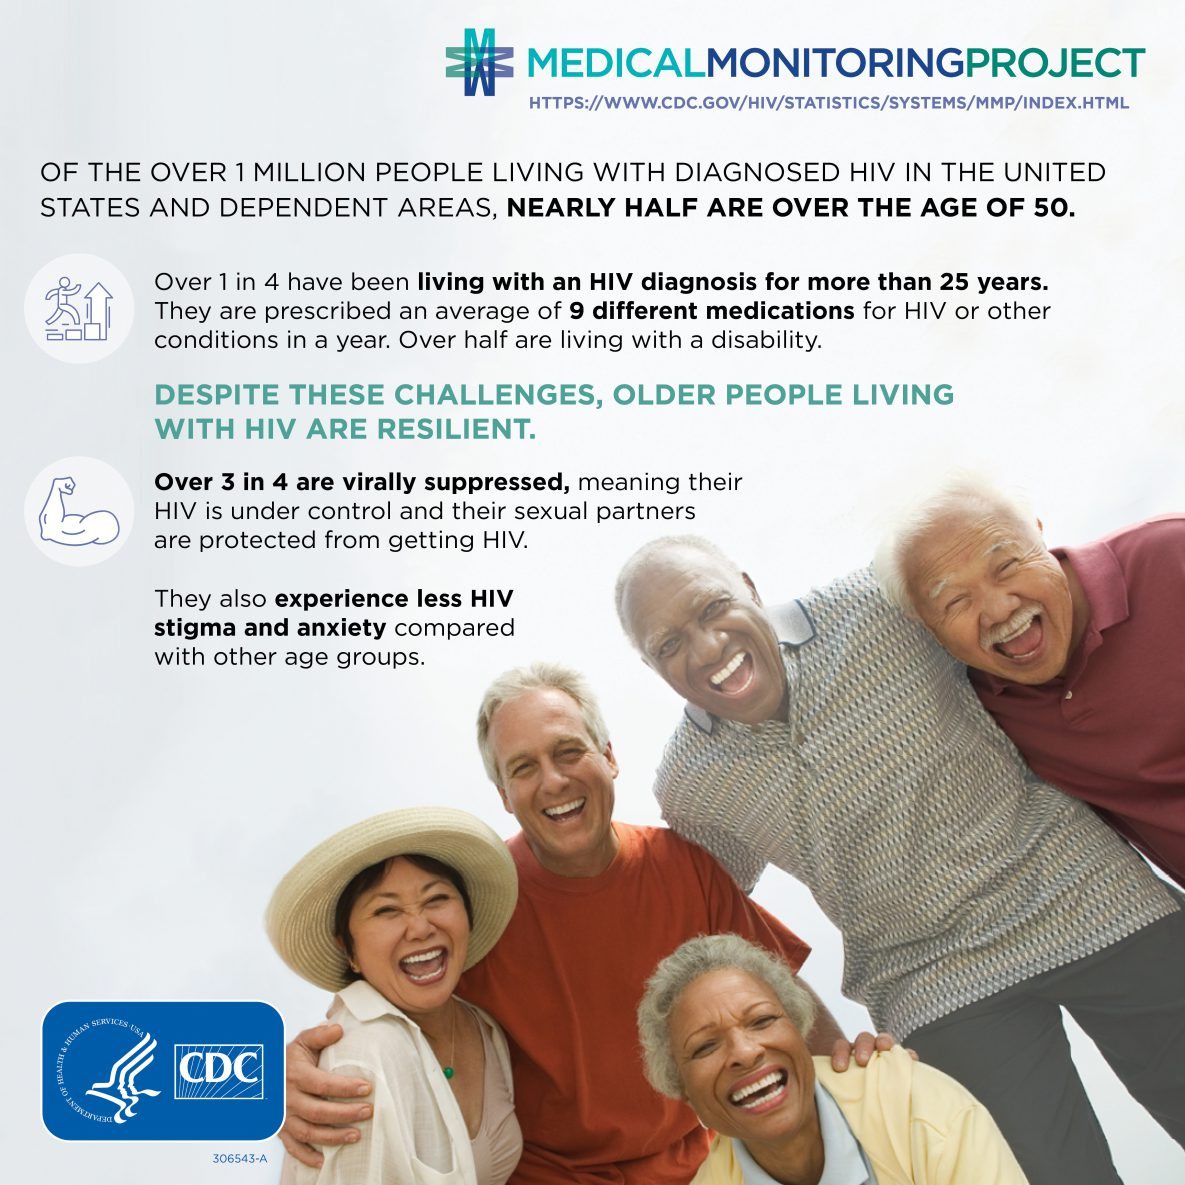 Of the over 1 million people living with diagnosed HIV in the United States and dependent areas, nearly half are over the age of 50. Over 1 in 4 have been living with an HIV diagnosis for more than 25 years. They are prescribed an average of 9 different medications for HIV or other conditions in a year. Over half are living with a disability. Despite these challenges, older people living with HIV are resilient. Over 3 in 4 are virally suppressed, meaning their HIV is under control and their sexual partners are protected from getting HIV. They also experience less HIV stigma and anxiety compared with other age groups.